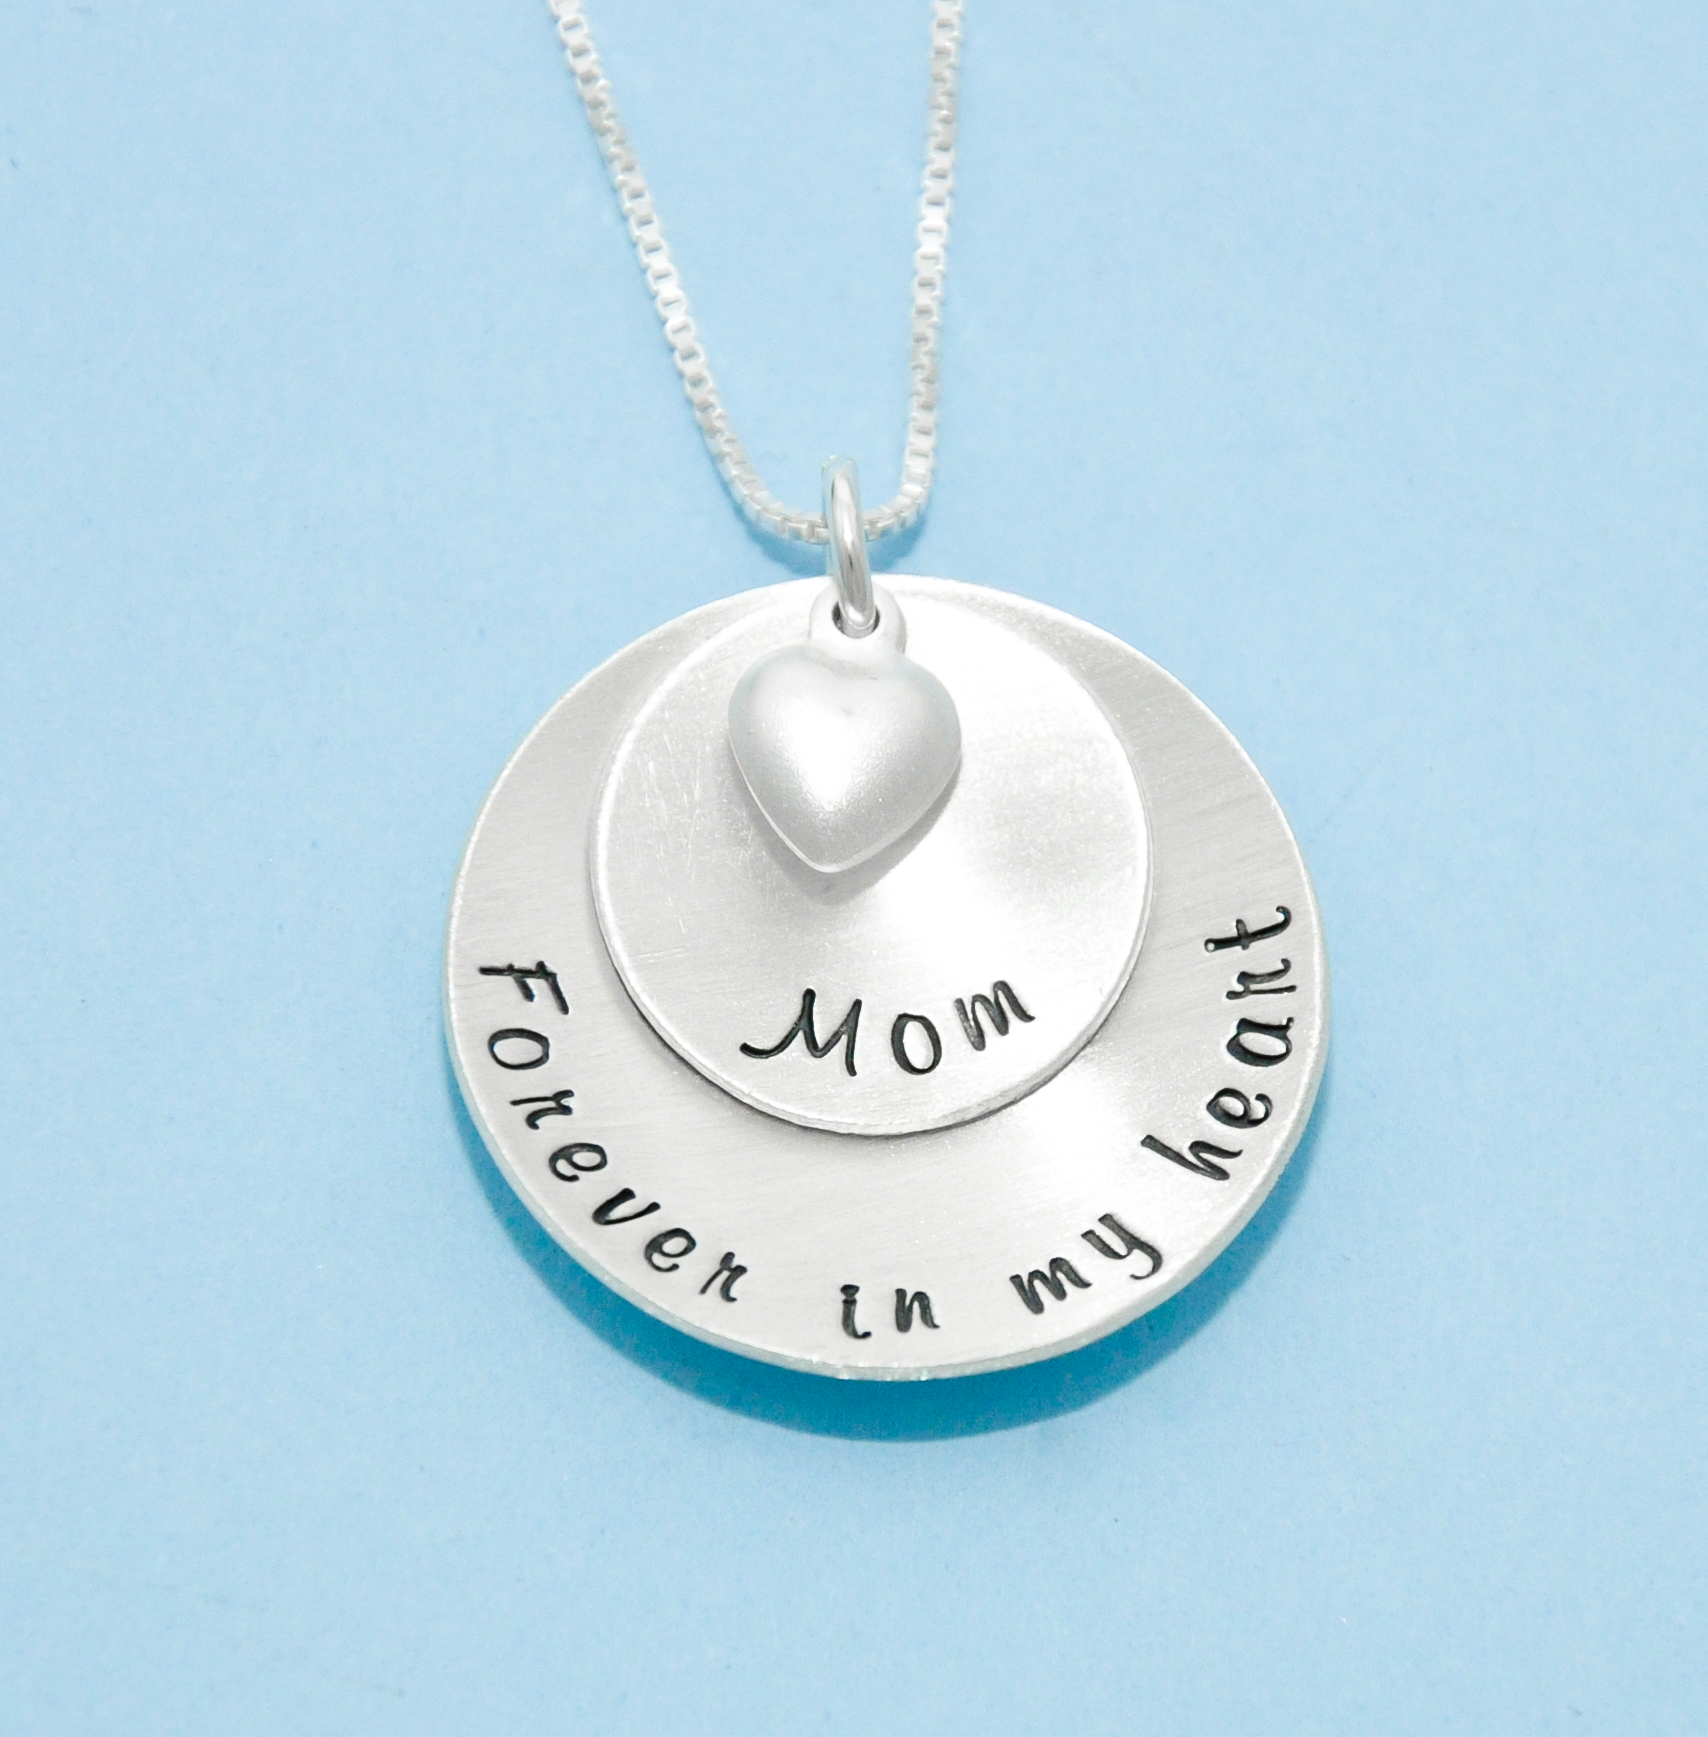 silver memorial of teardrop pendant product grip god necklace urn locket